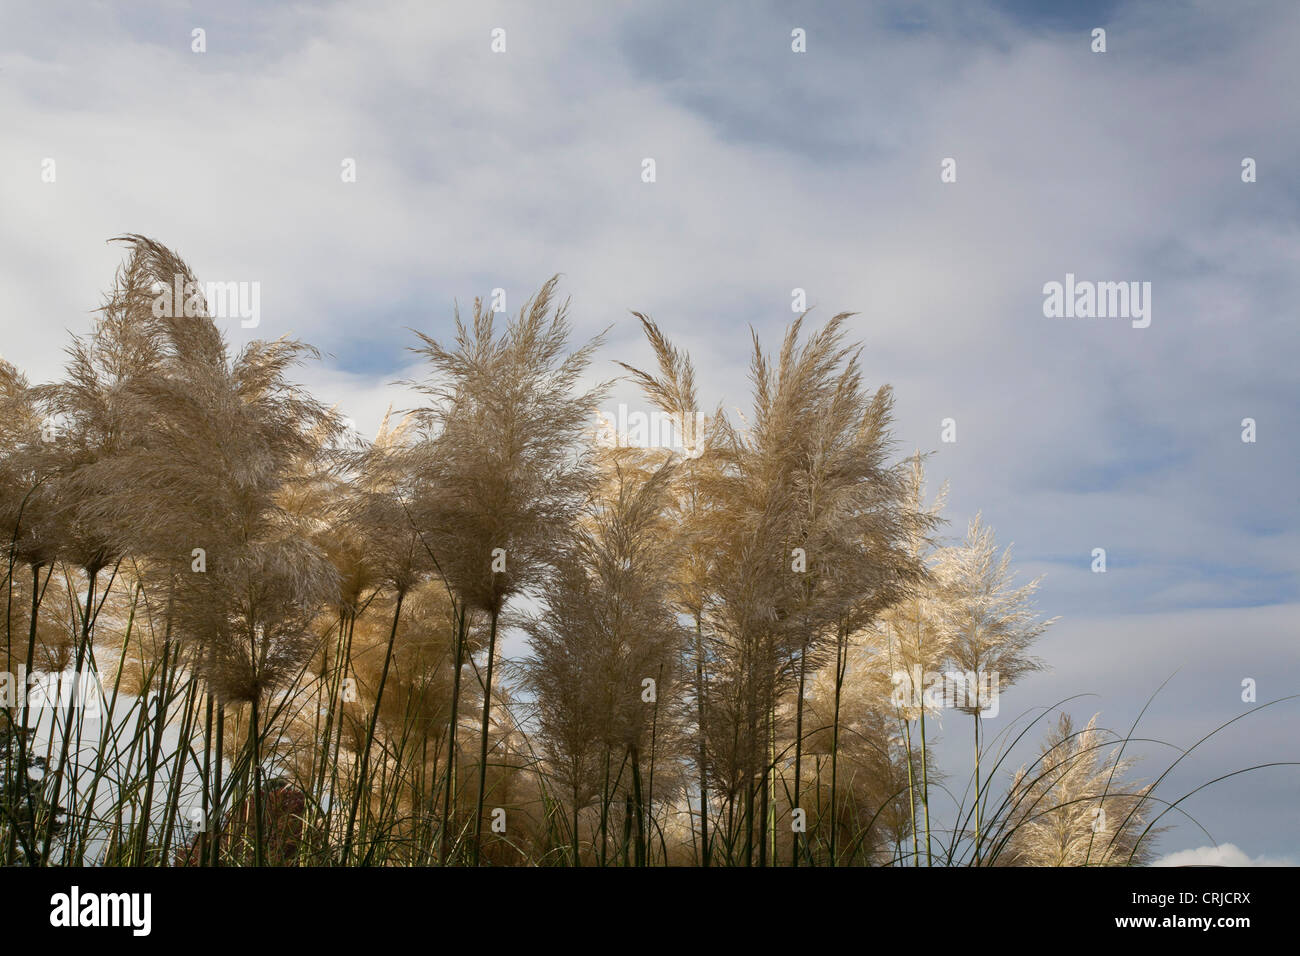 Pampas Grass with blue sky and white fluffy clouds. - Stock Image